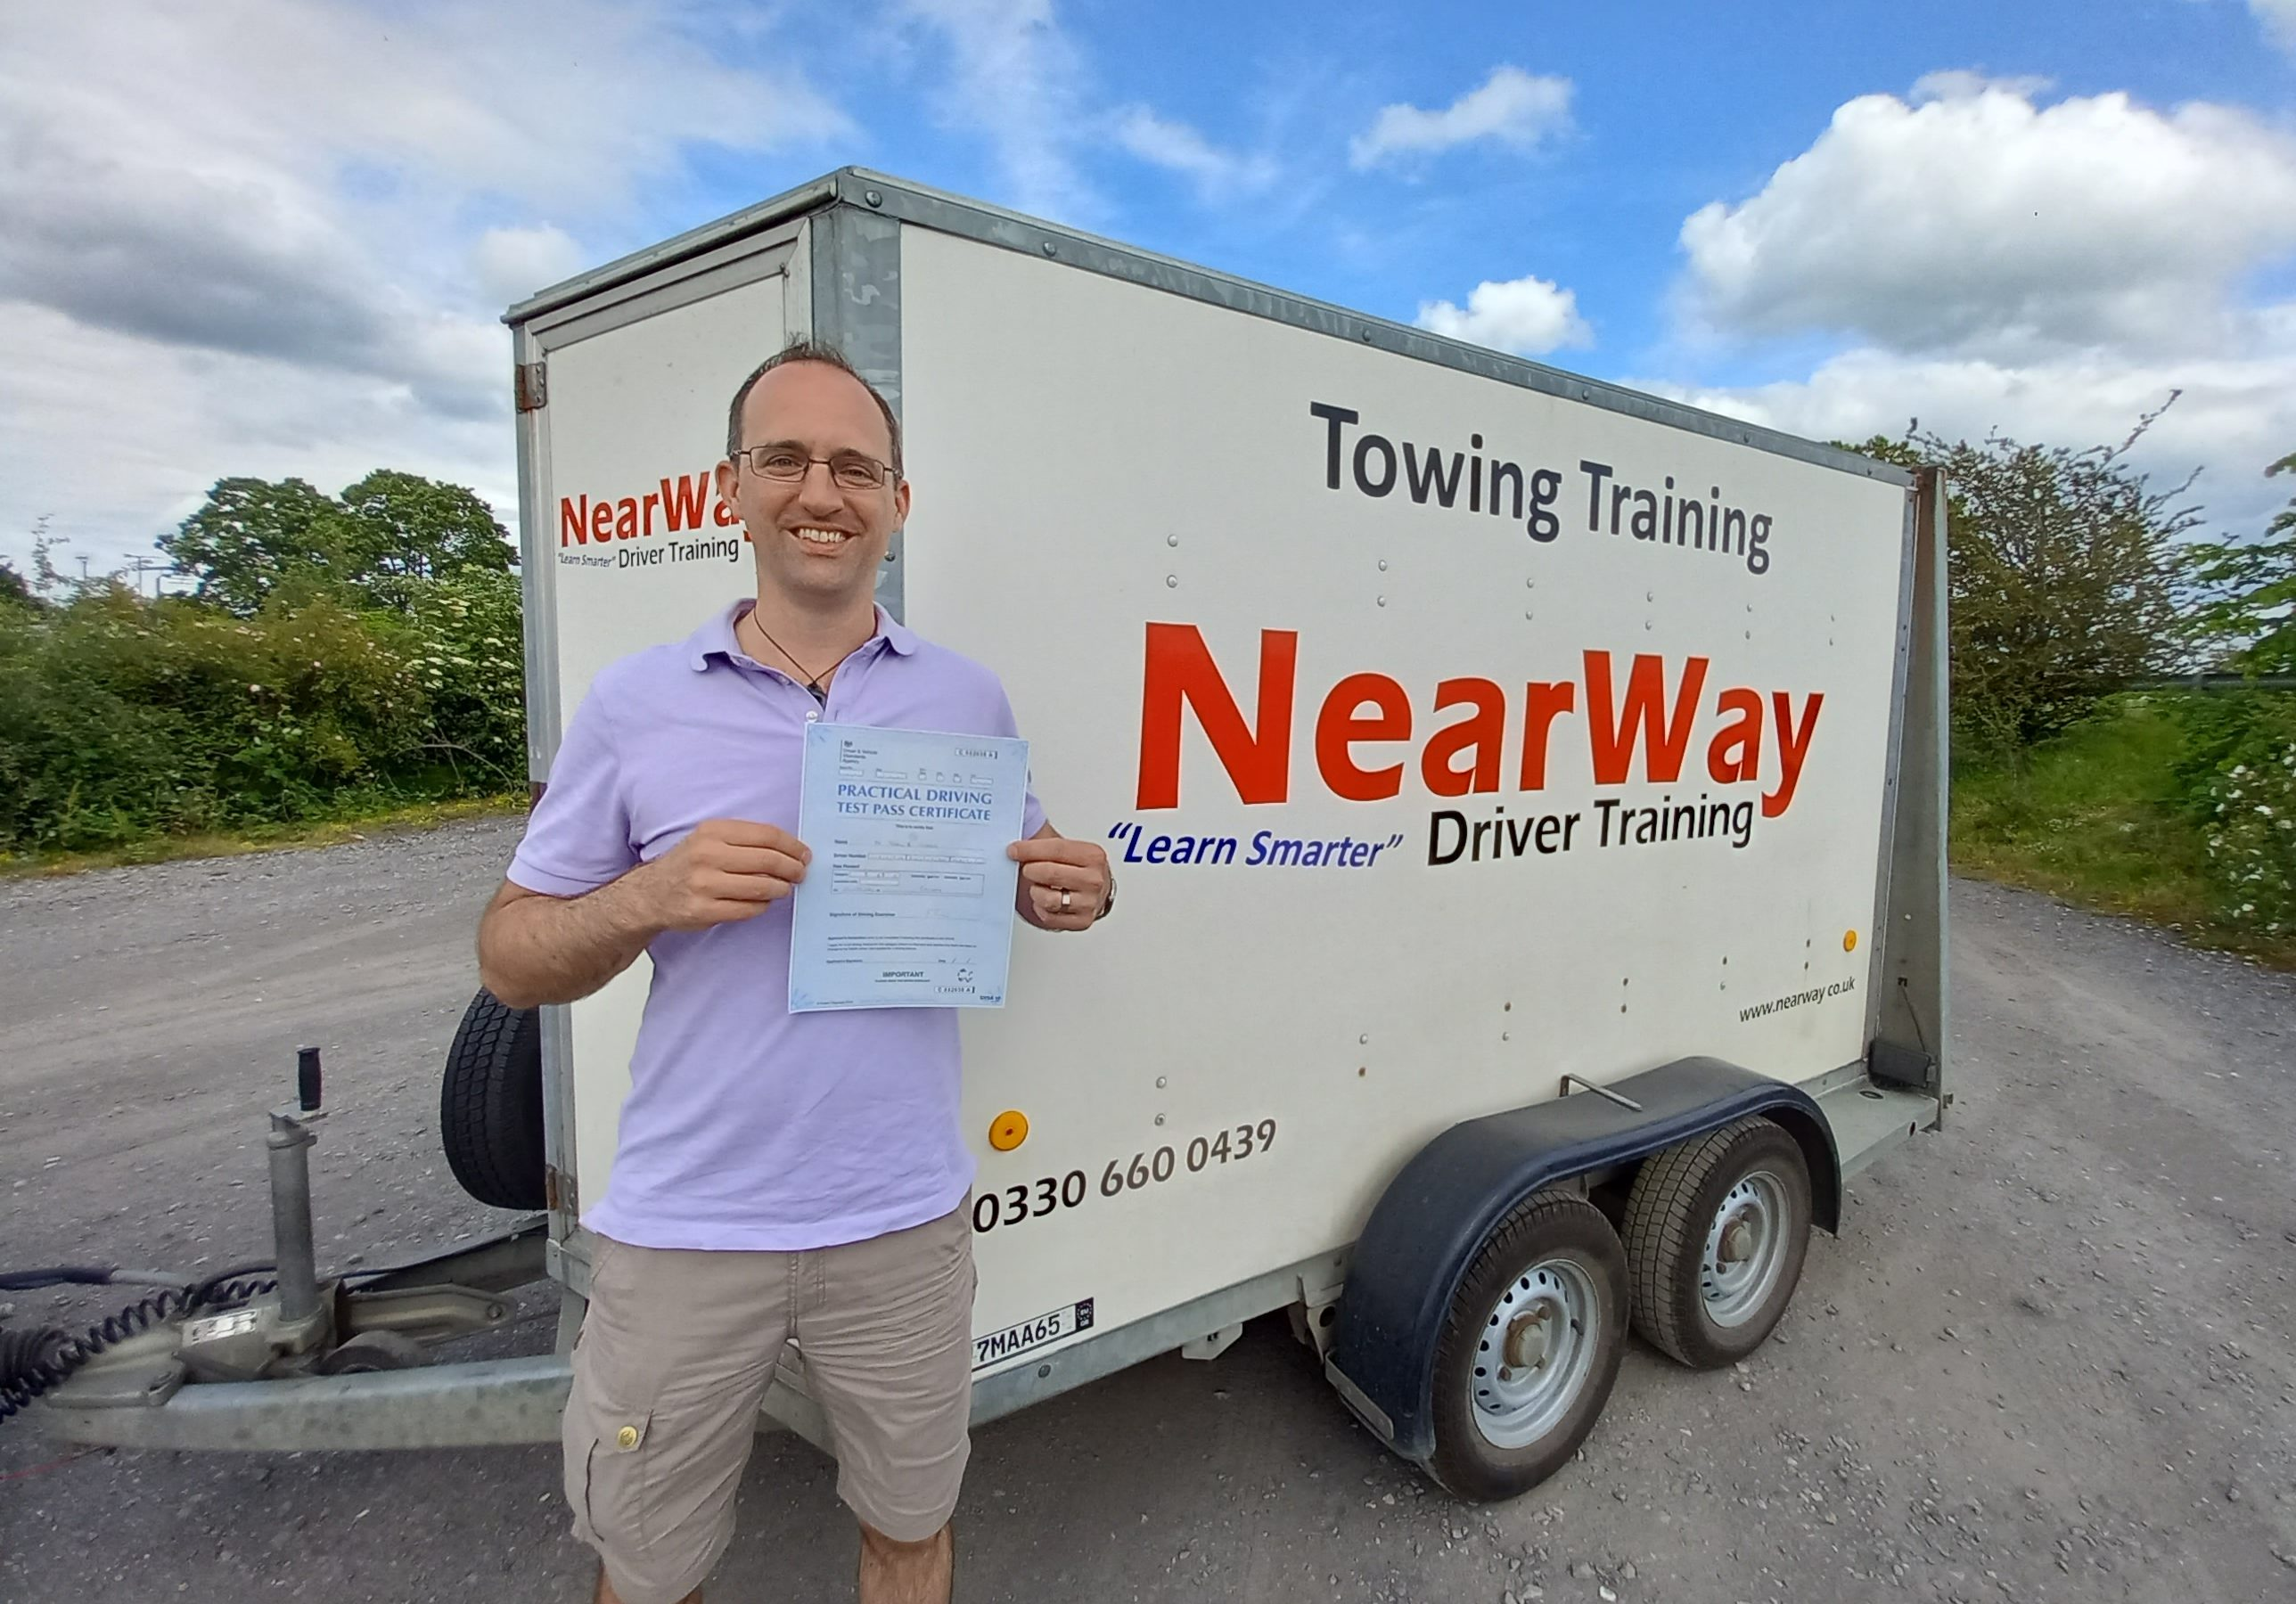 Karl Green Towing Test Pass Oxfordshire